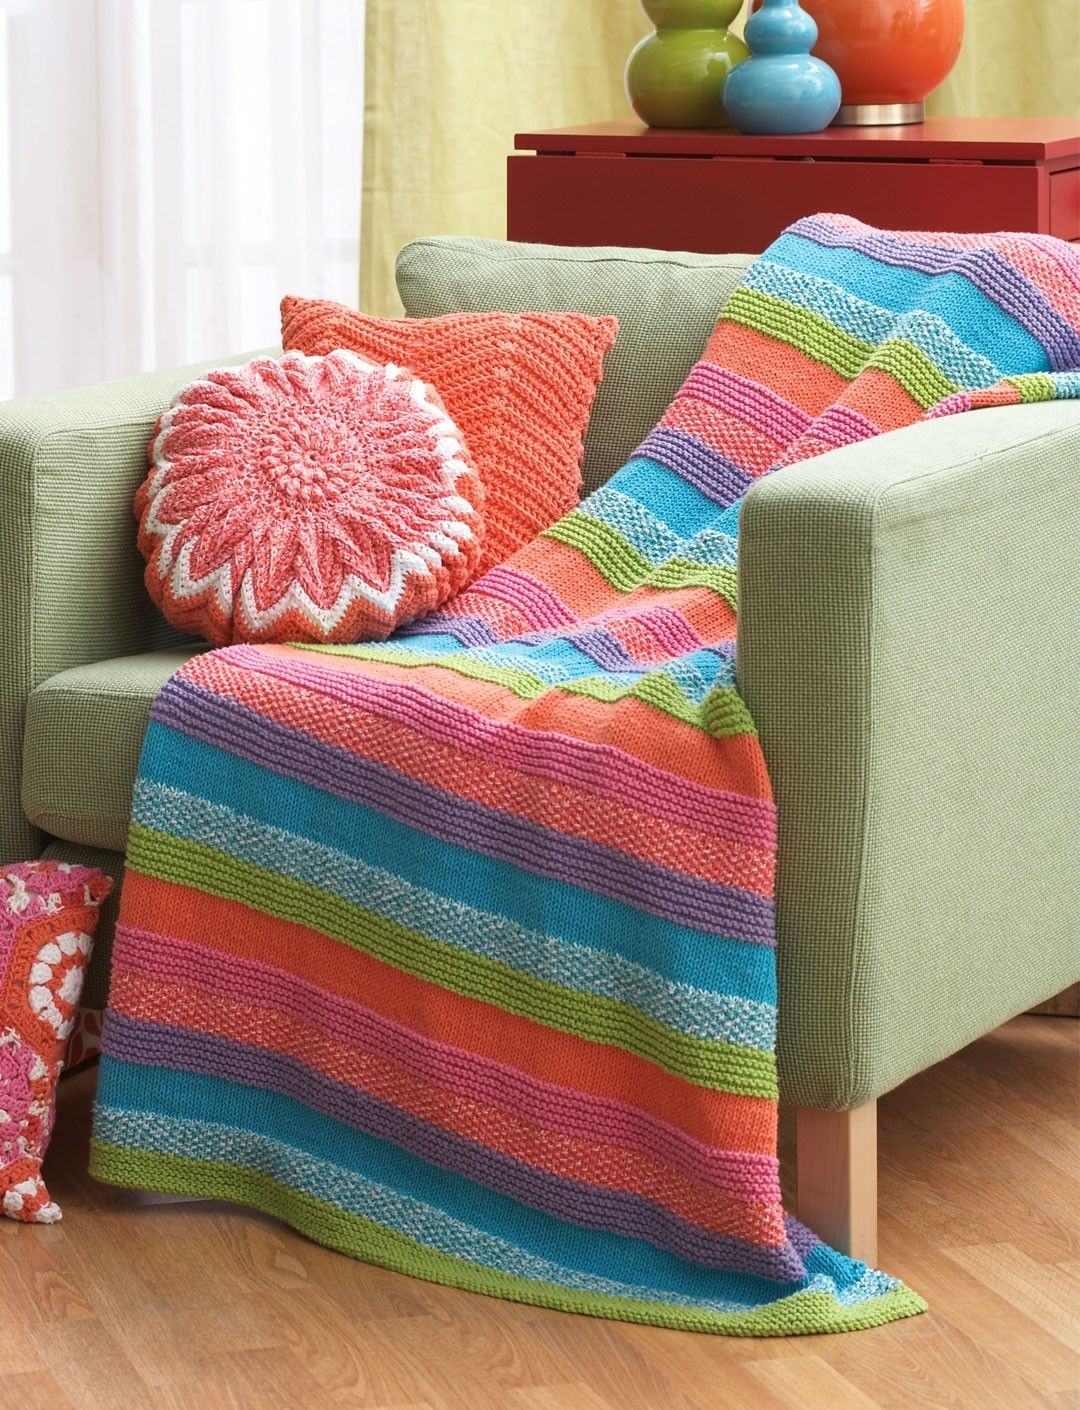 Yarnspirations bernat striped blanket free pattern easy yarnspirations bernat striped blanket free pattern easy cotton yarn bankloansurffo Choice Image